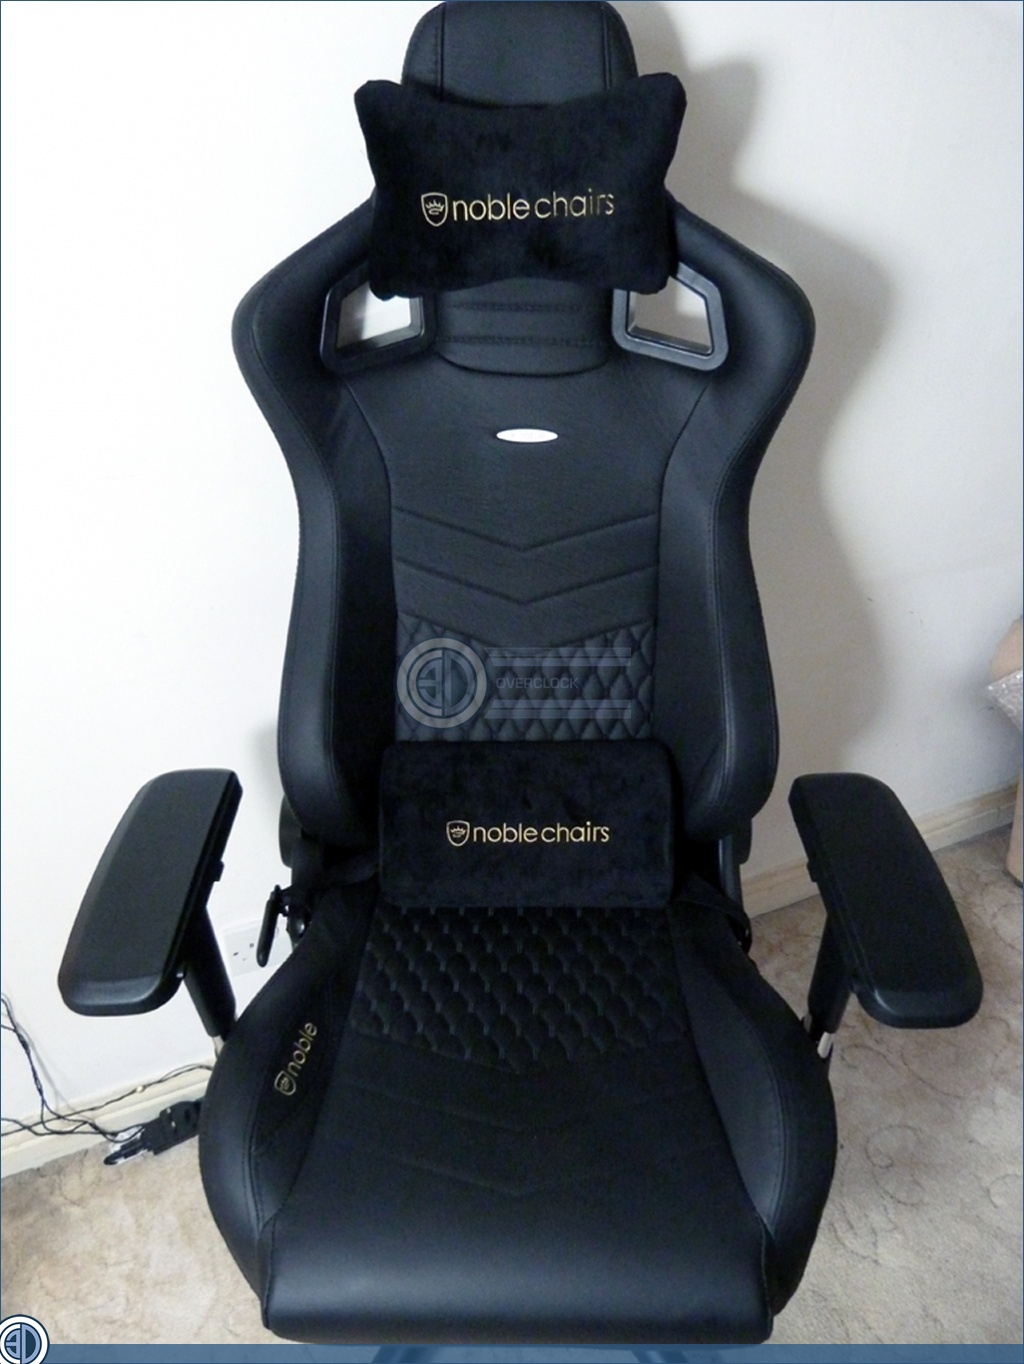 gaming chair reviews 2016 used lift chairs for elderly nobelchairs epic real leather review final